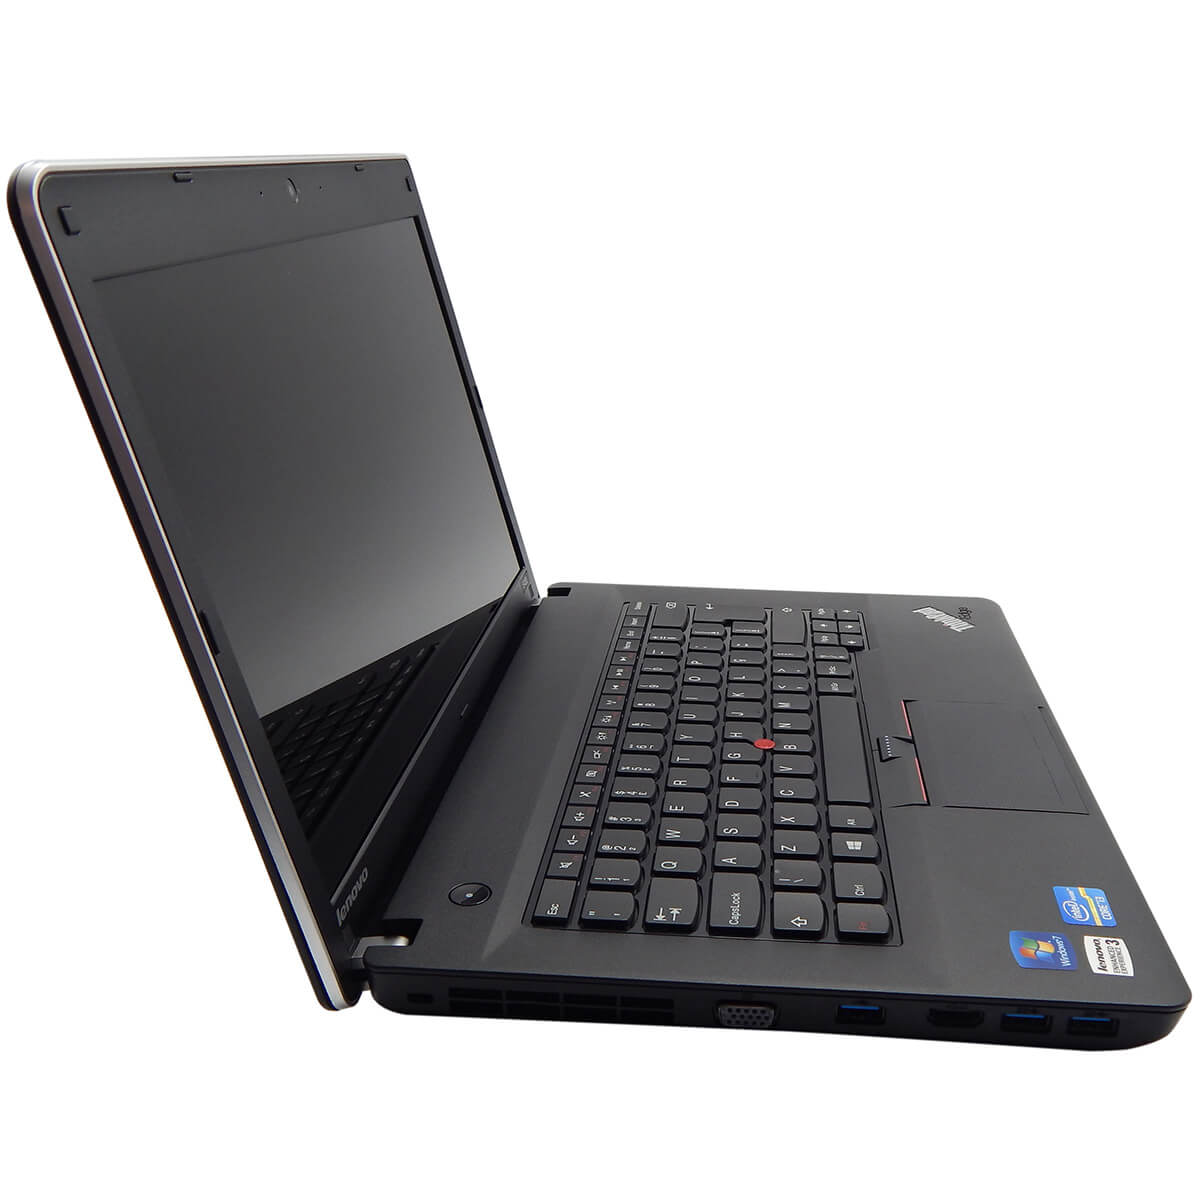 Notebook Lenovo E430 - I3-2328m - 4Gb - 320Gb - DVD -  Tela 14 - Seminovo